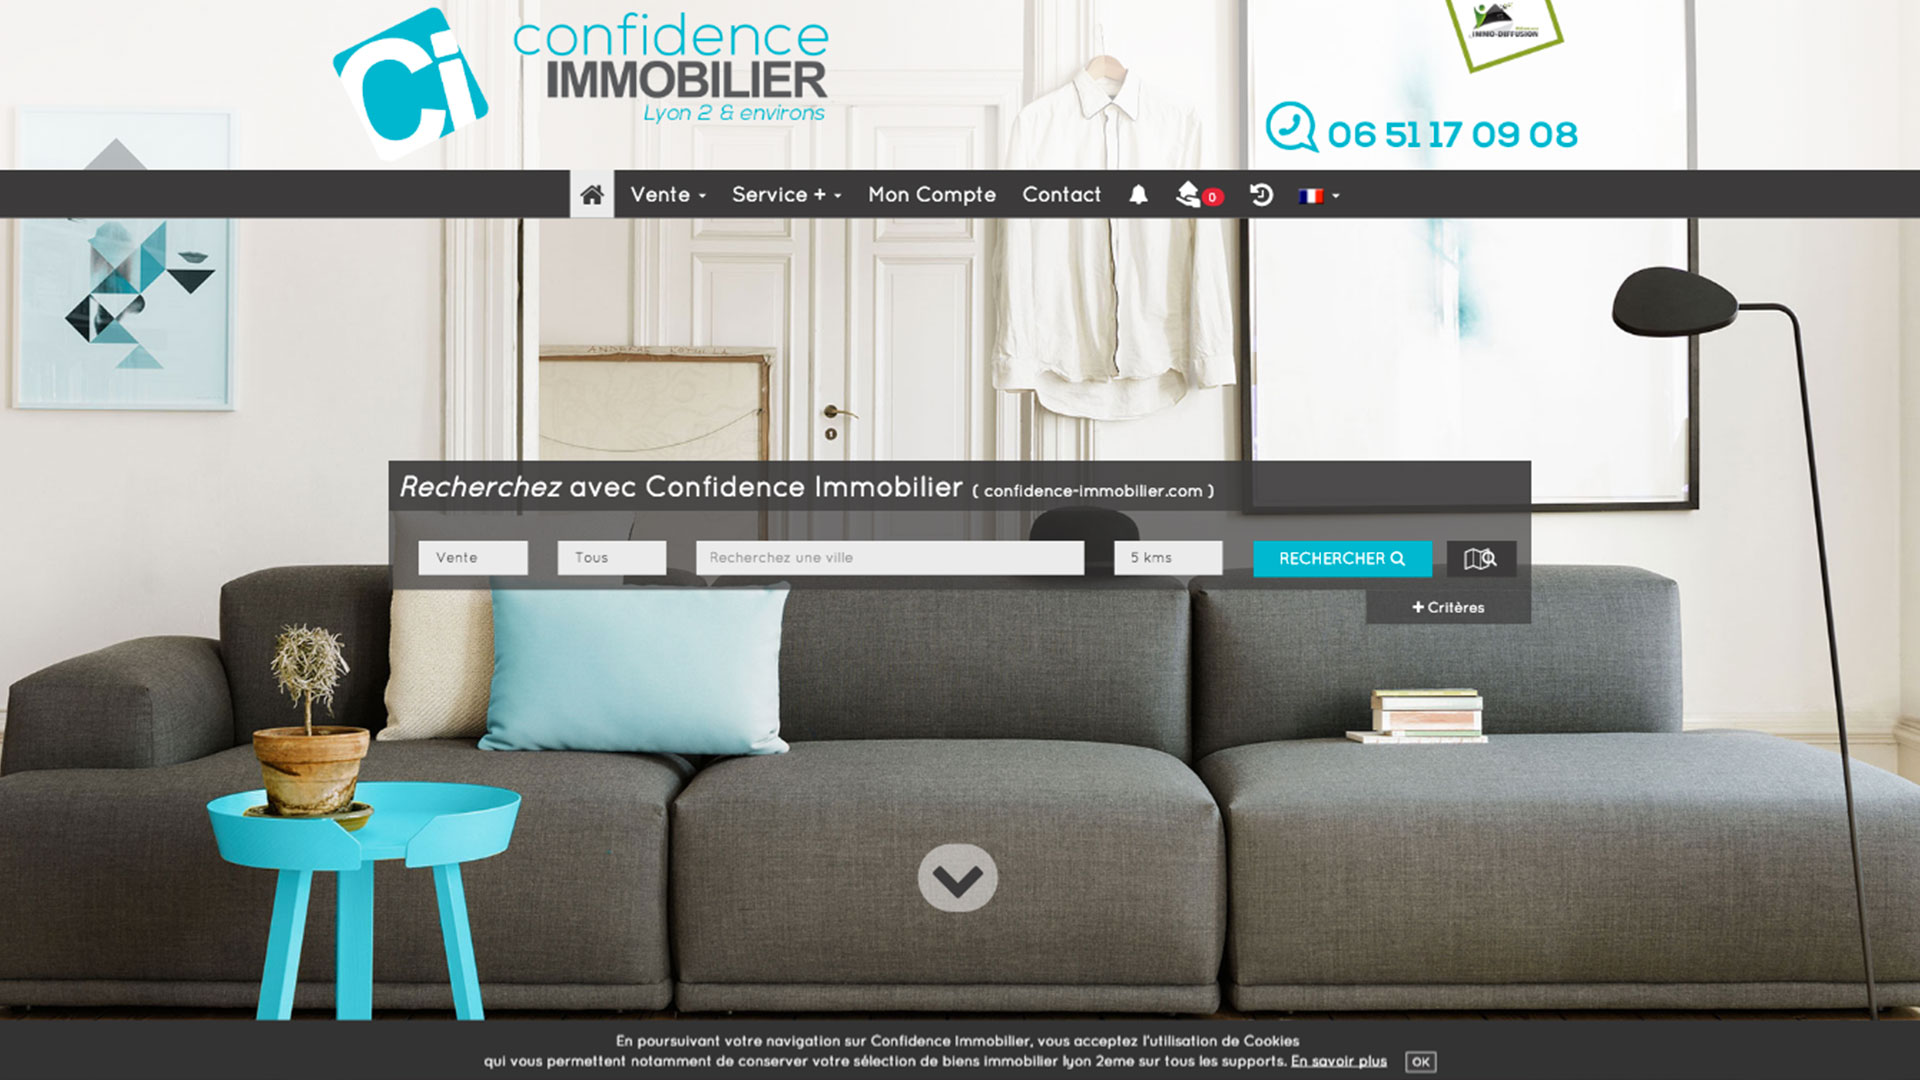 CONFIDENCE IMMOBILIER